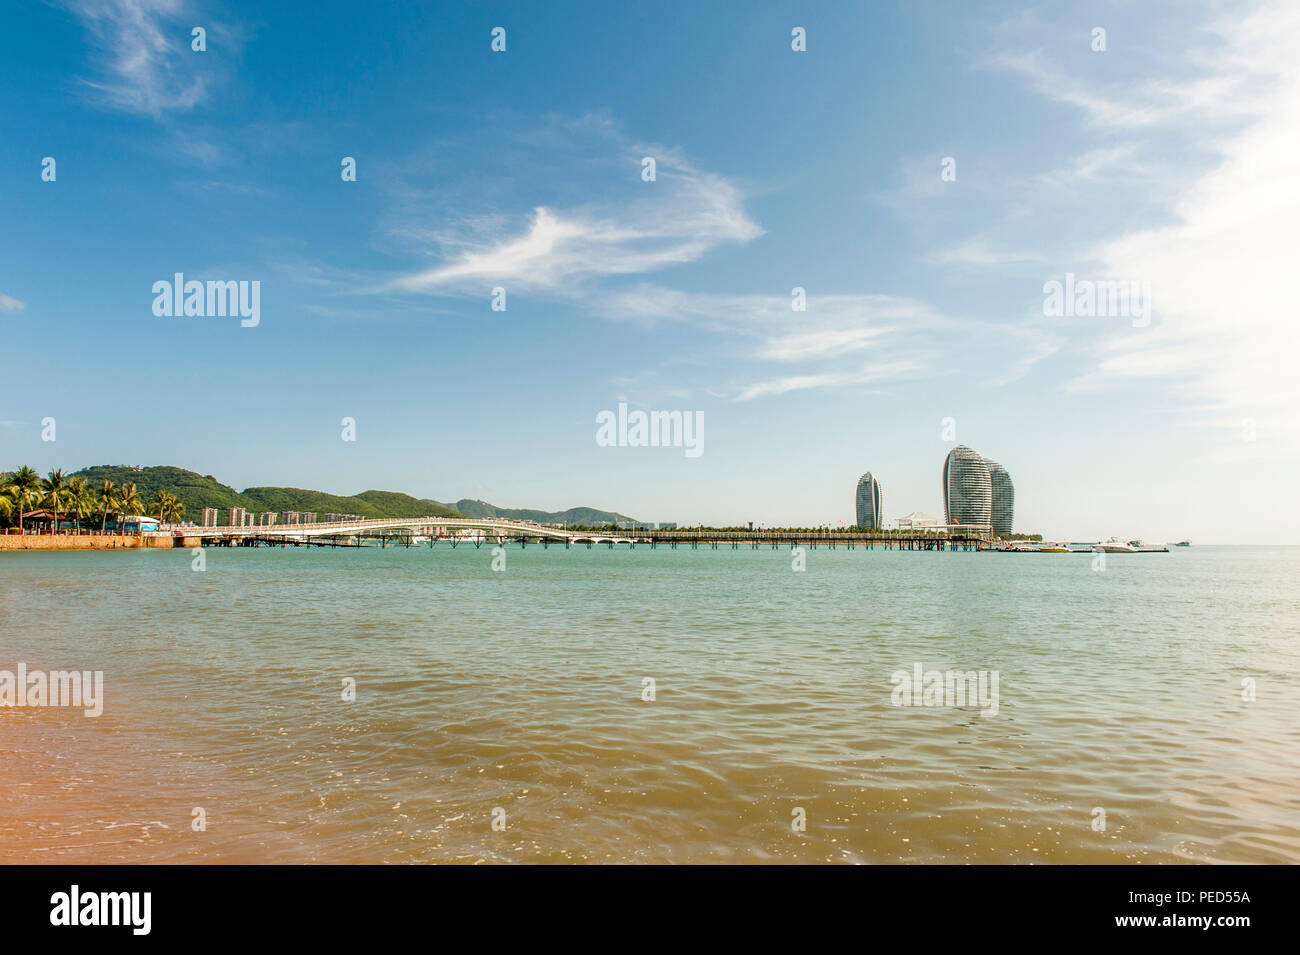 View of Phoenix Island from the public beach at Sanya, China - Stock Image